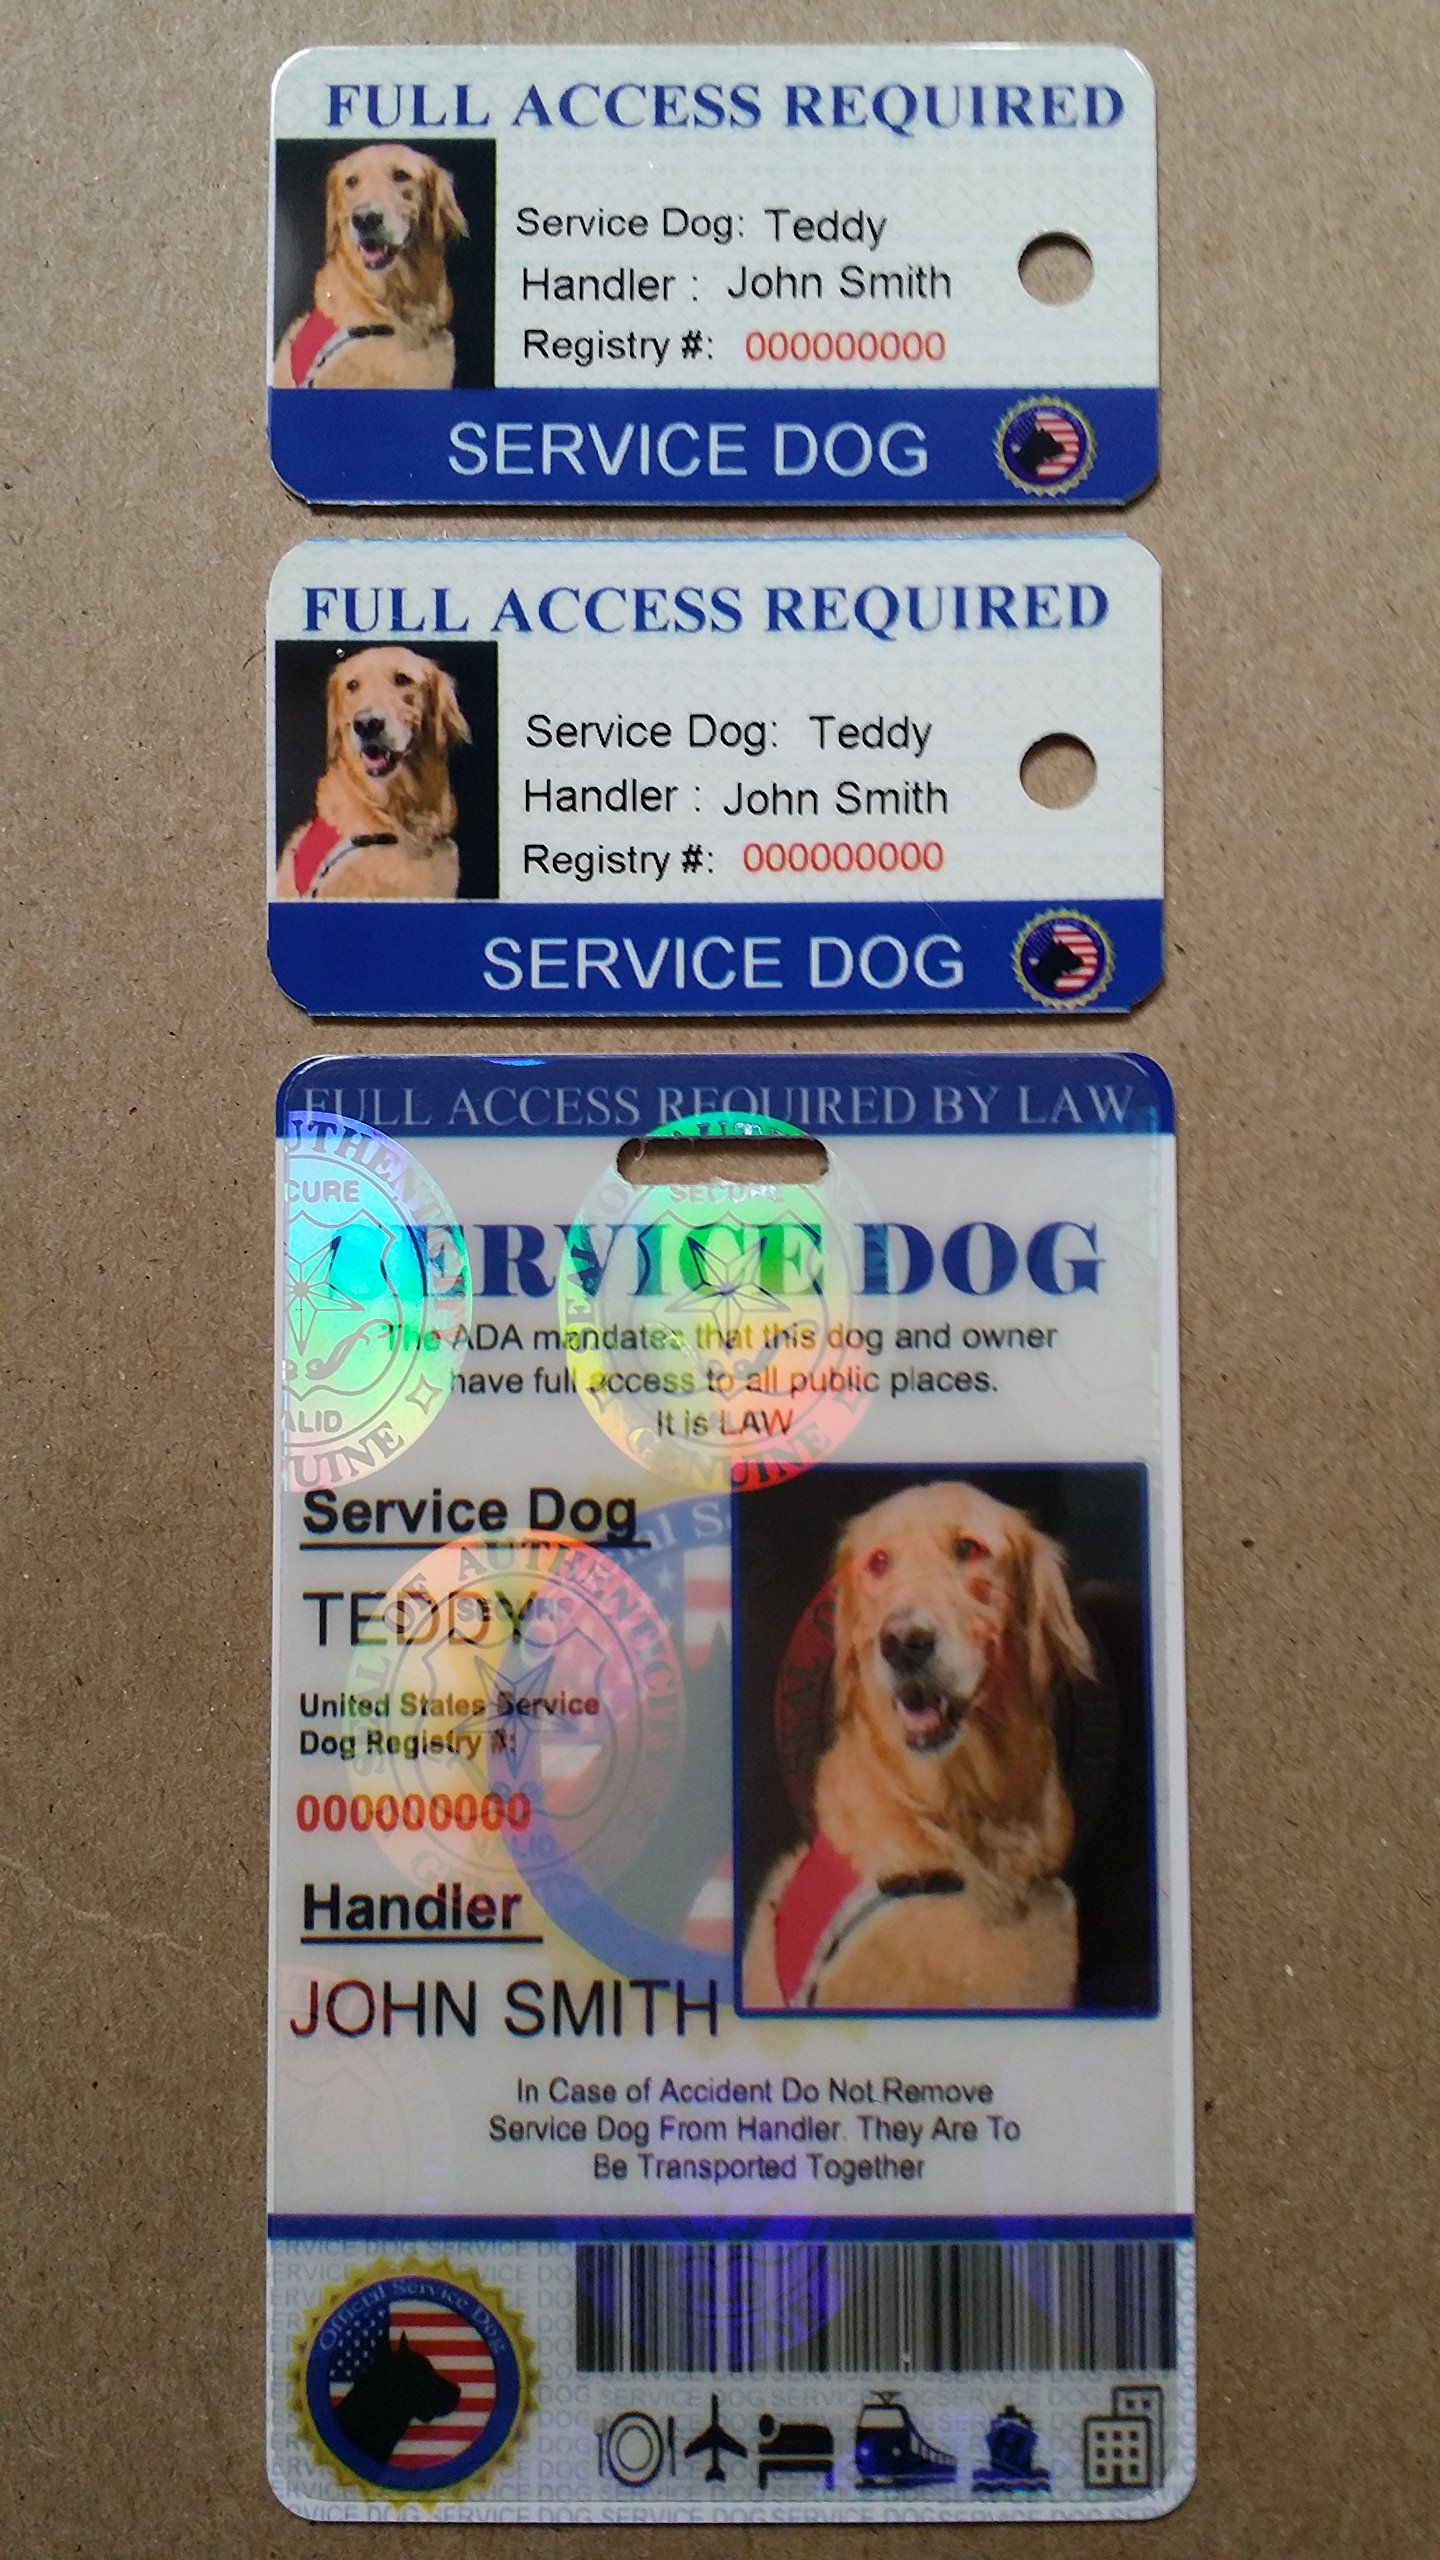 Just 4 Paws Custom Holographic Qr Code Therapy Dog Id Card With Registration To Service Dogs Registry With Strap Portrait St Service Dogs Dog Id Therapy Dogs